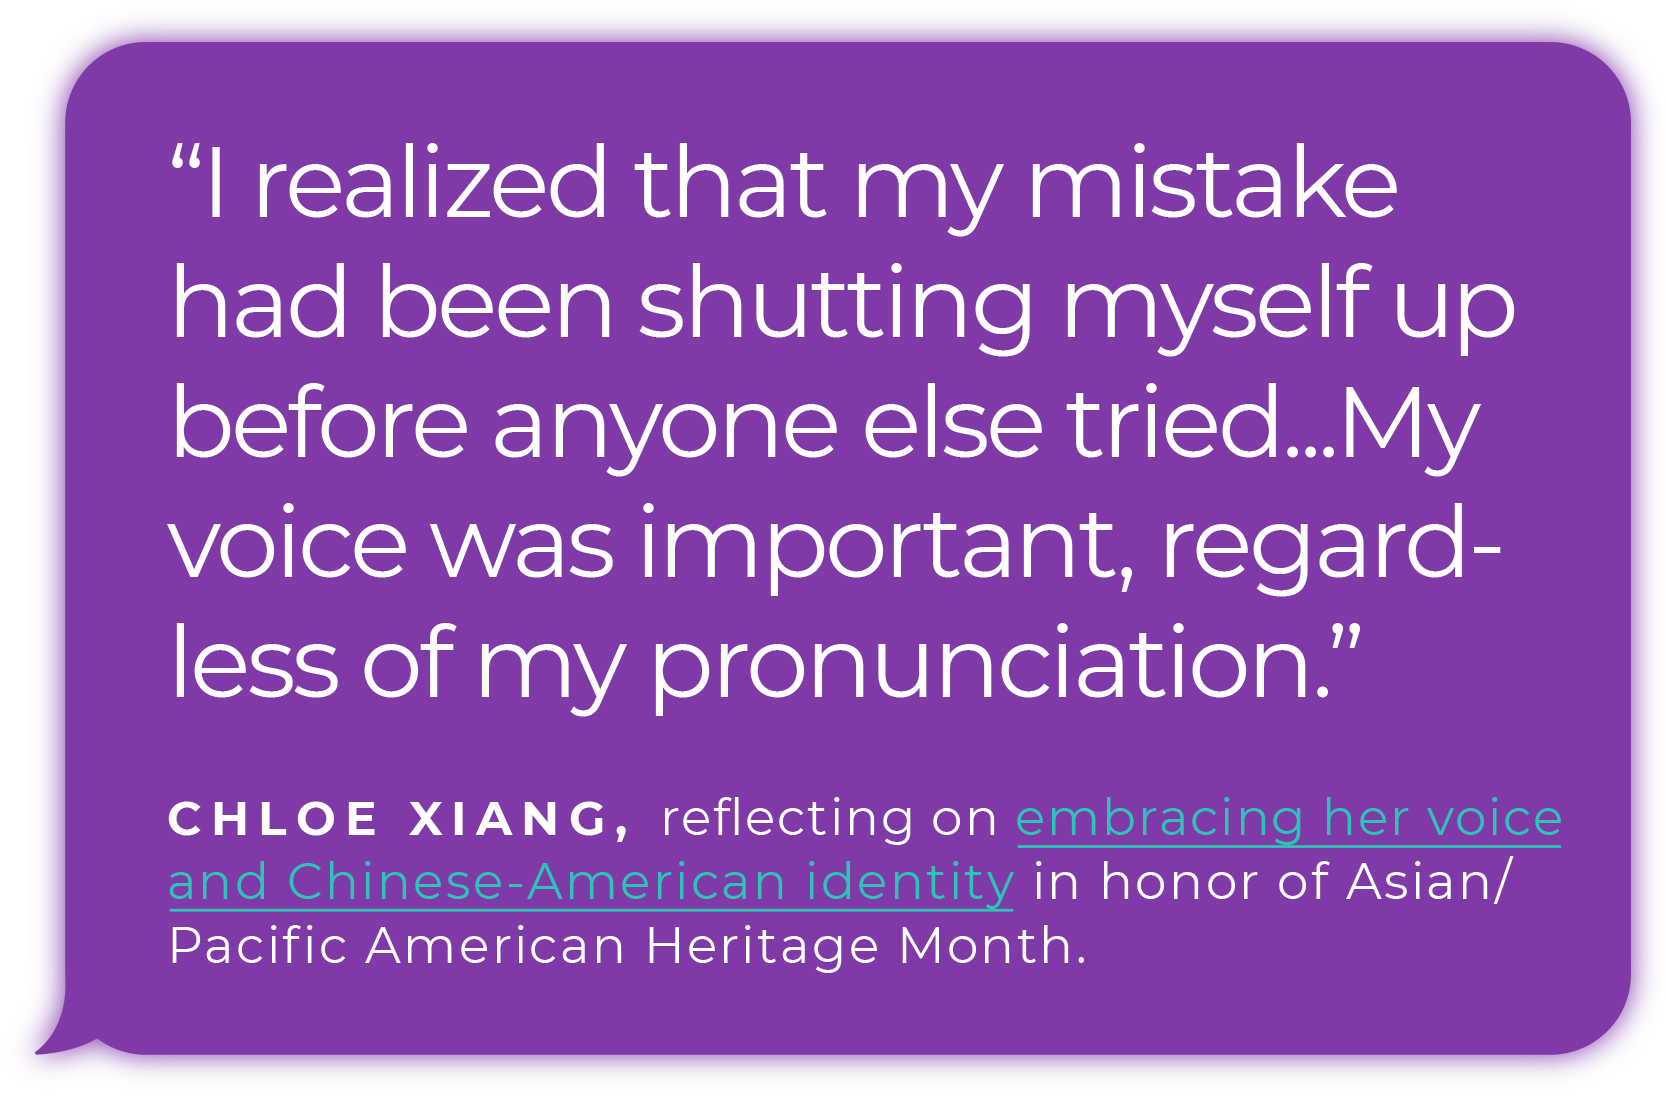 """I realized that my mistake had been shutting myself up before anyone else tried...My voice was important, regardless of my pronunciation."" - Chloe Xiang, reflecting on embracing her voice and Chinese-American identity in honor of Asian/Pacific American Heritage Month."